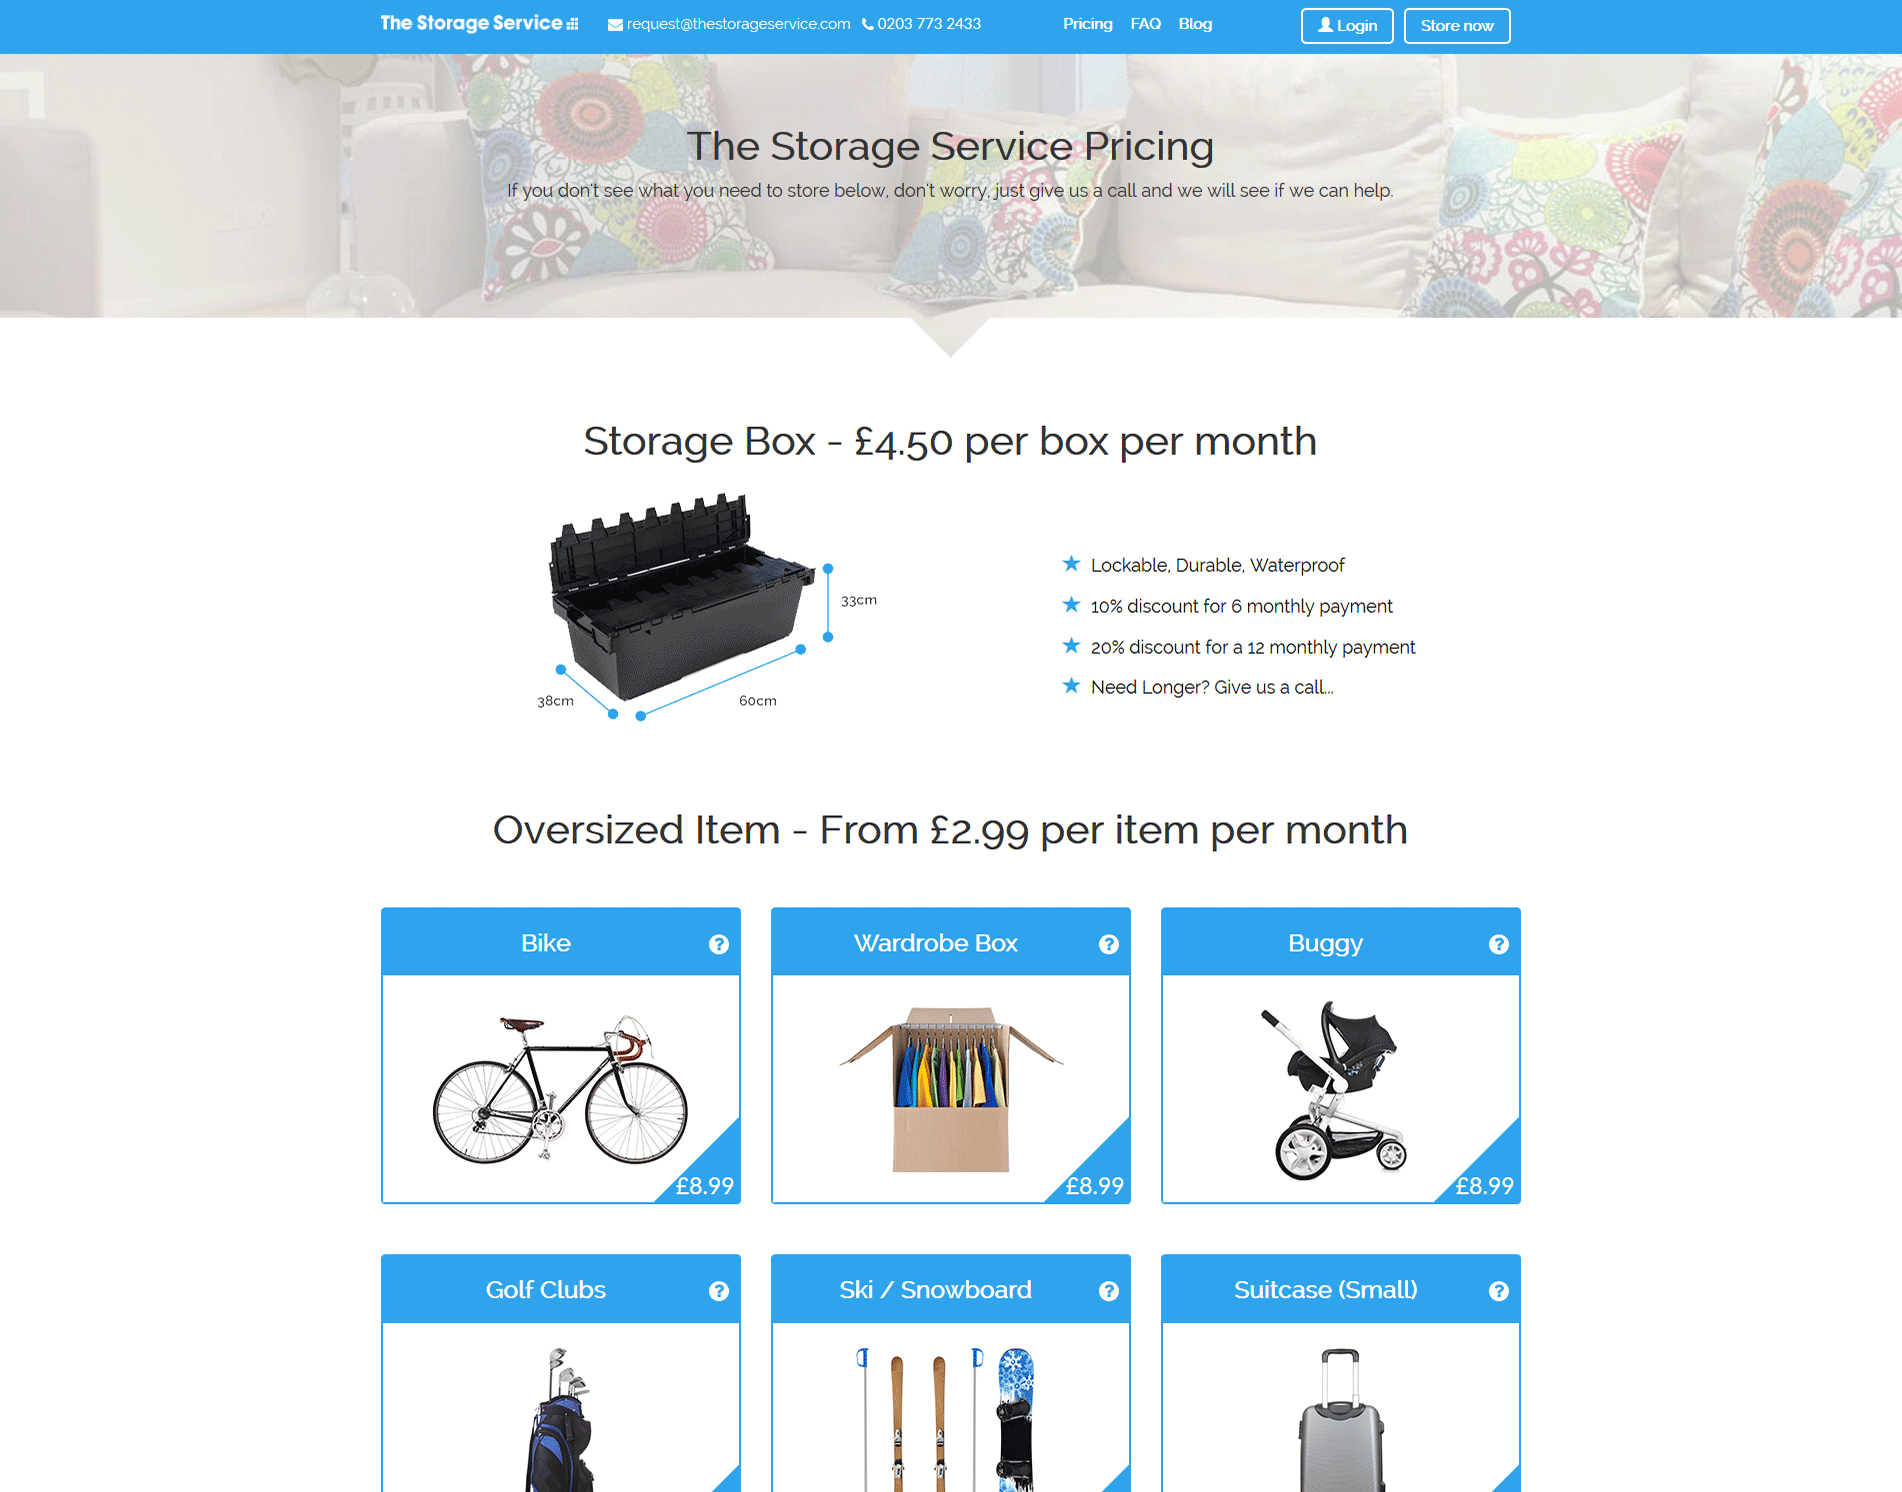 The Storage Service - Pricing